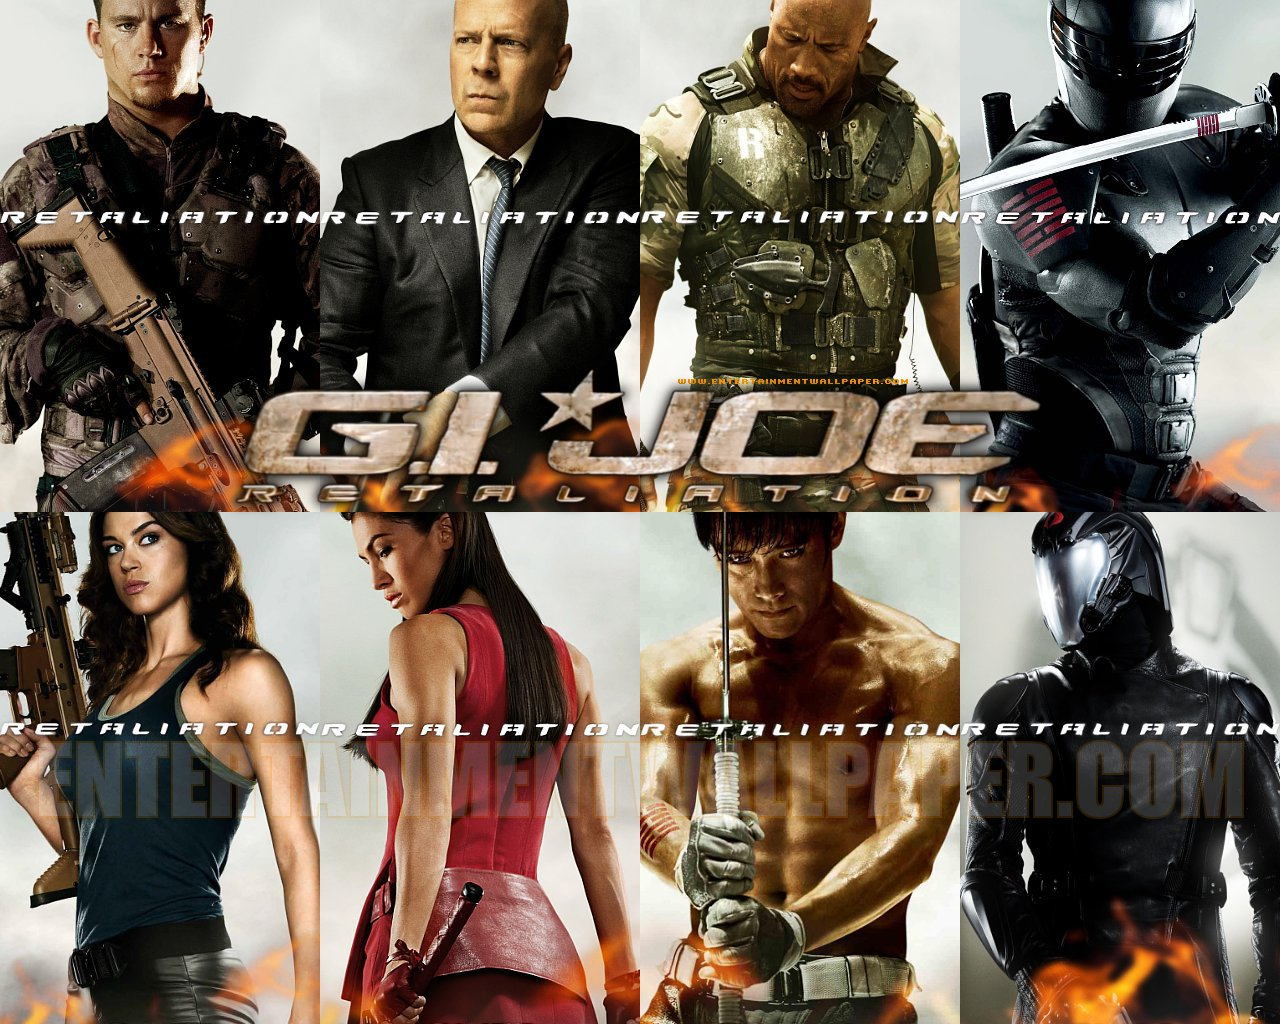 http://3.bp.blogspot.com/-6y_5AwSRn8M/UNWeNWwUzKI/AAAAAAAABho/CJn5aKNlJEI/s1600/G-I-Joe-Retaliation-2013-upcoming-movies-31017784-1280-1024%5B1%5D.jpg